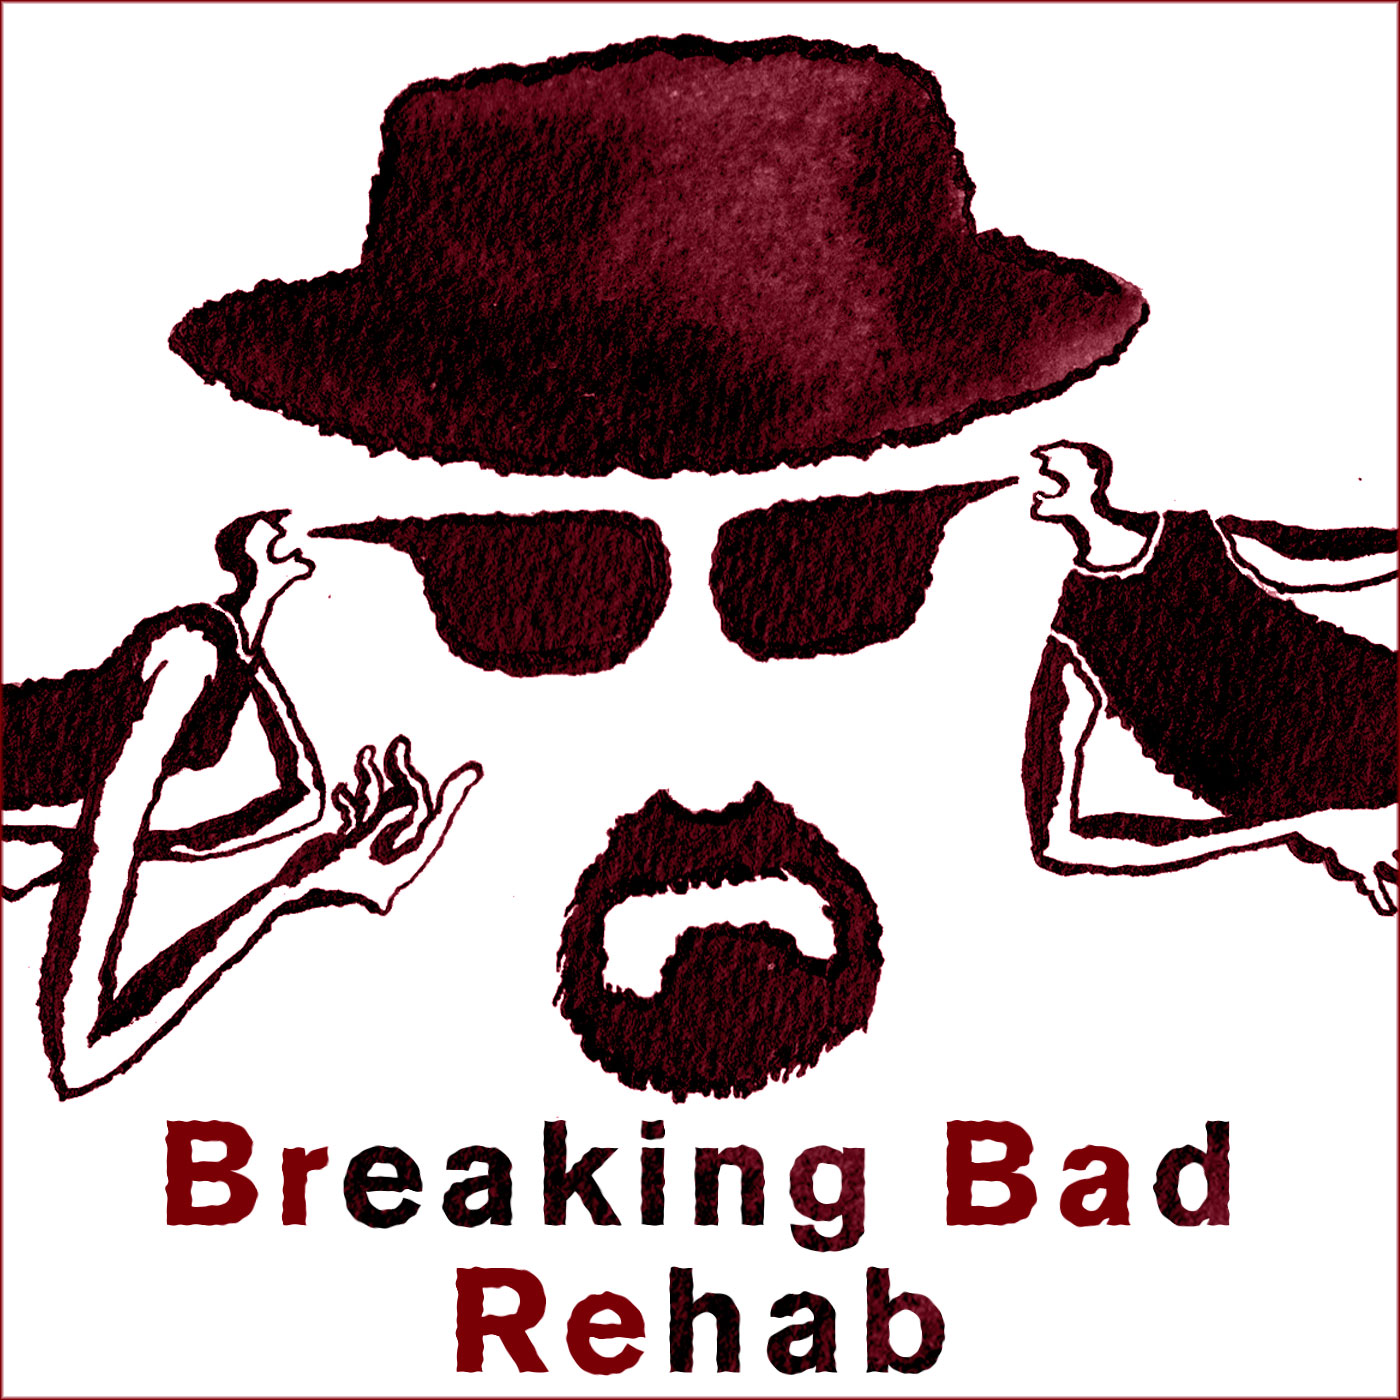 essays on the tyranny of careers and the joy of real work ethan breaking bad rehab podcast